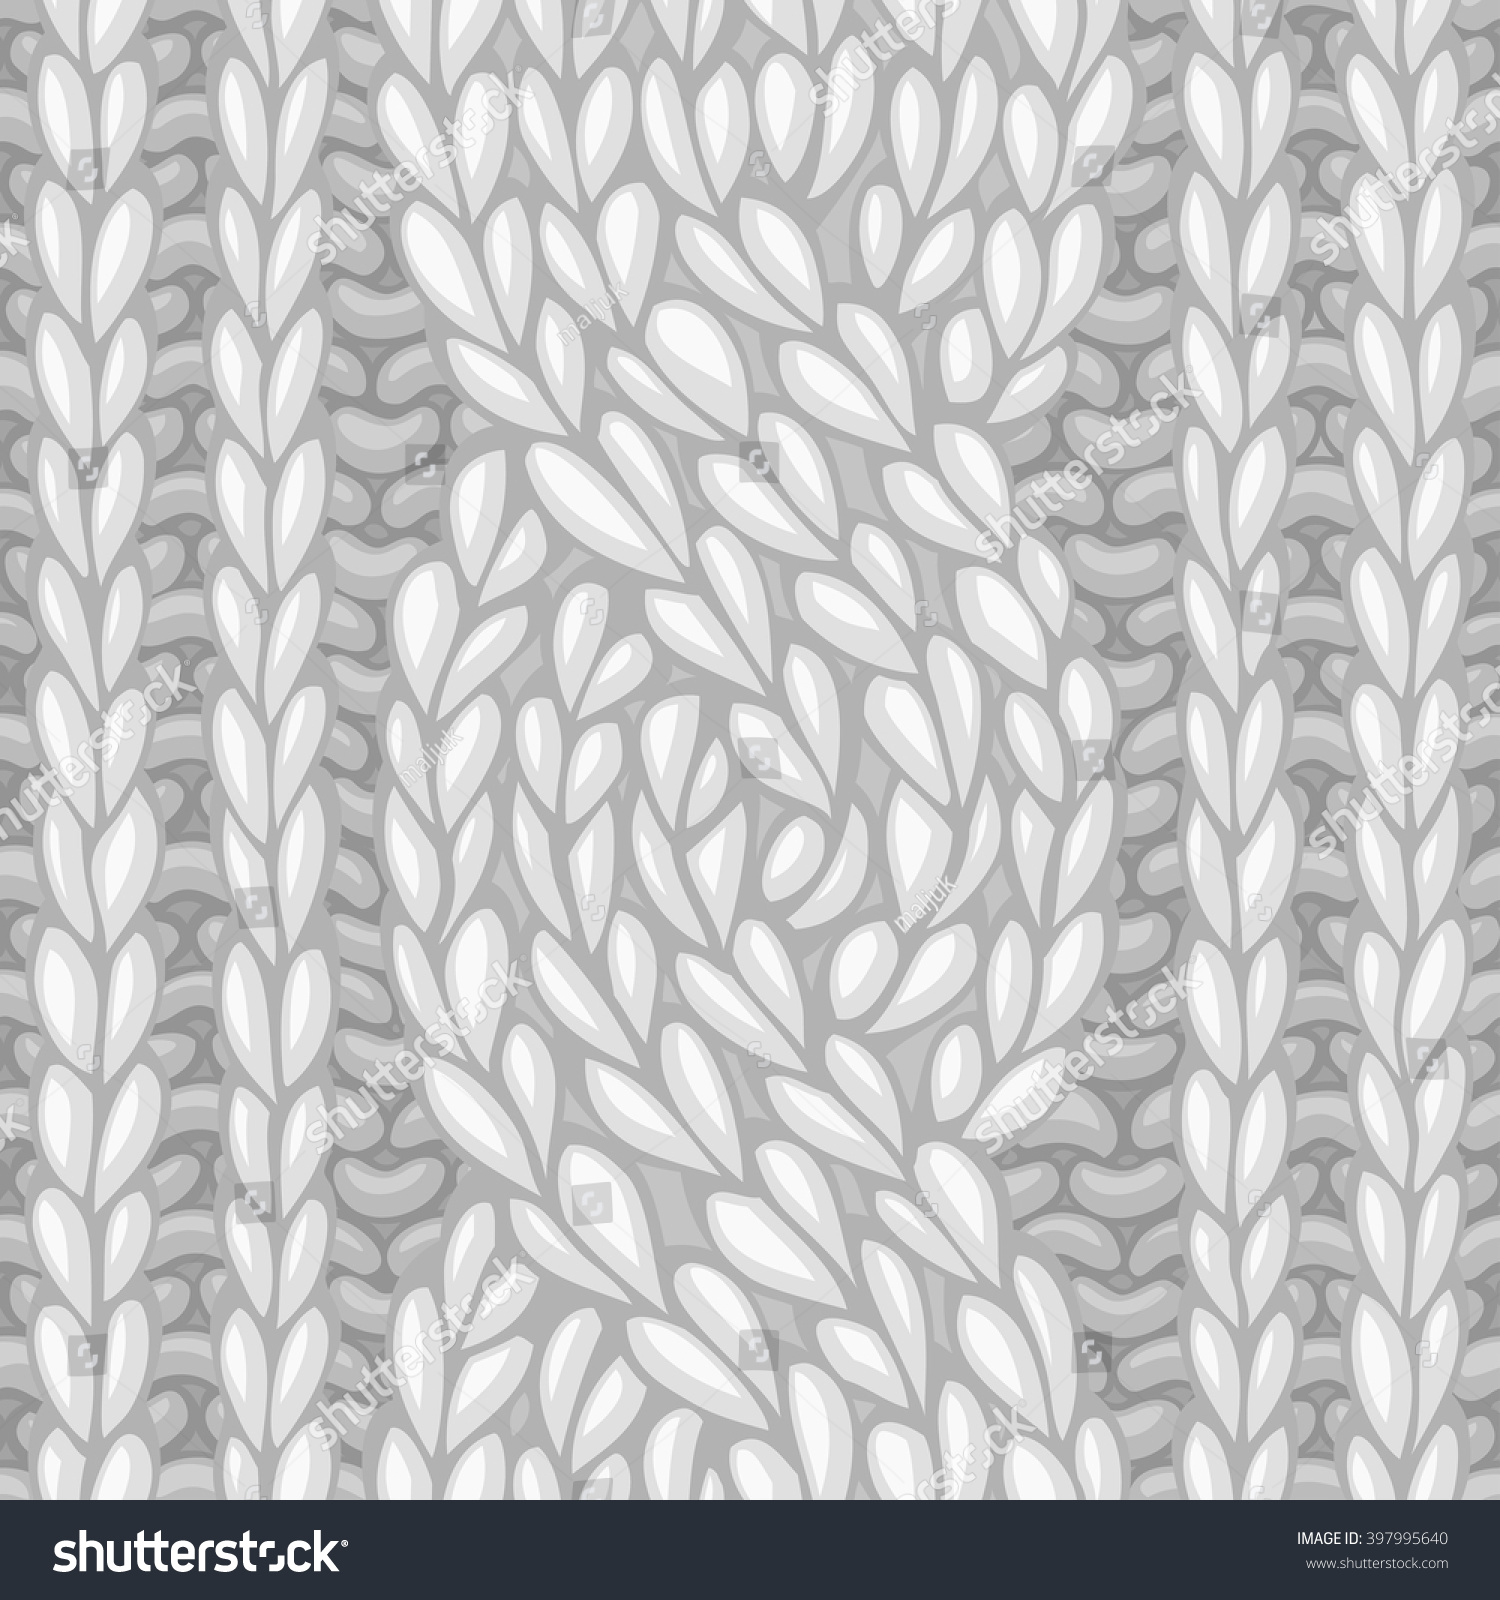 Knitting Stitches Vector : Seamless Six-Stitch Cable Stitch. Vector Left-Twisting Rope Cable (C6f) Knitt...